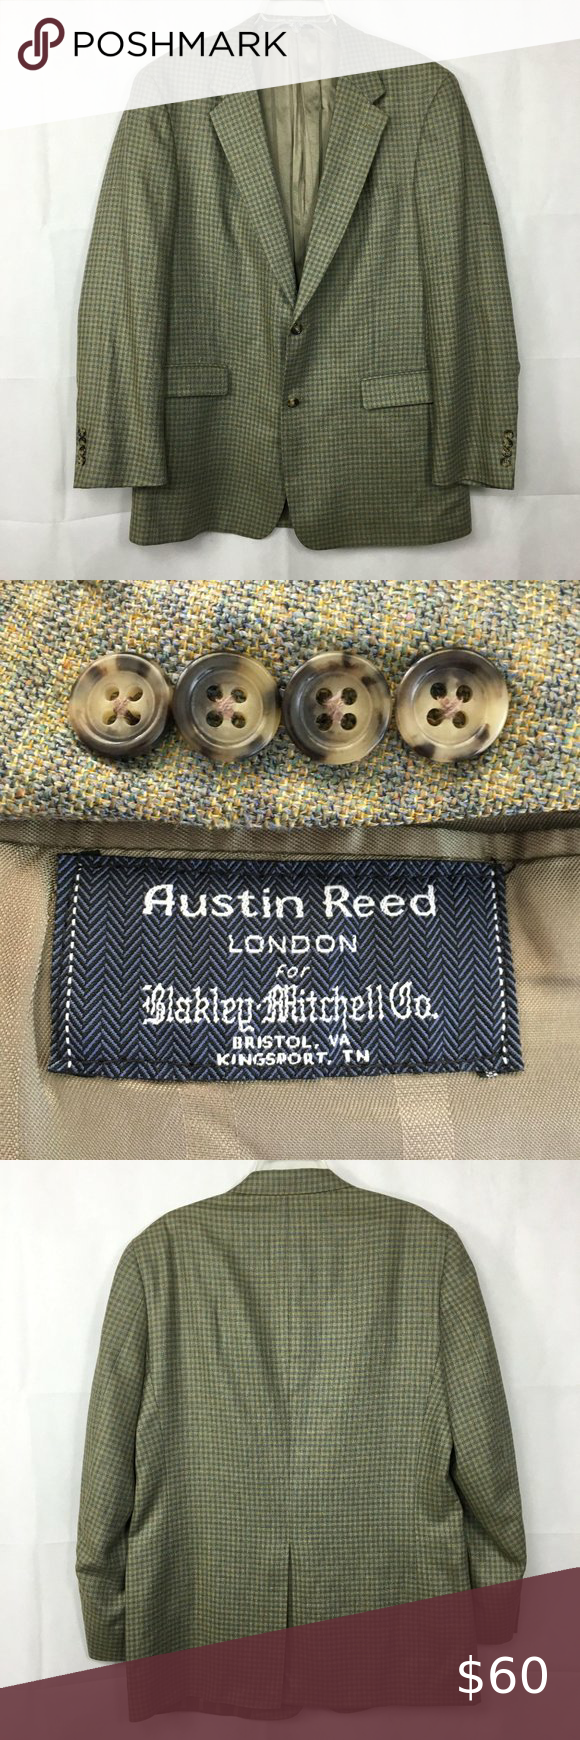 Austin Reed Beige Gray Silk Tweed Sport Coat 44l In 2020 Tweed Sport Coat Silk Tweed Gray Silk